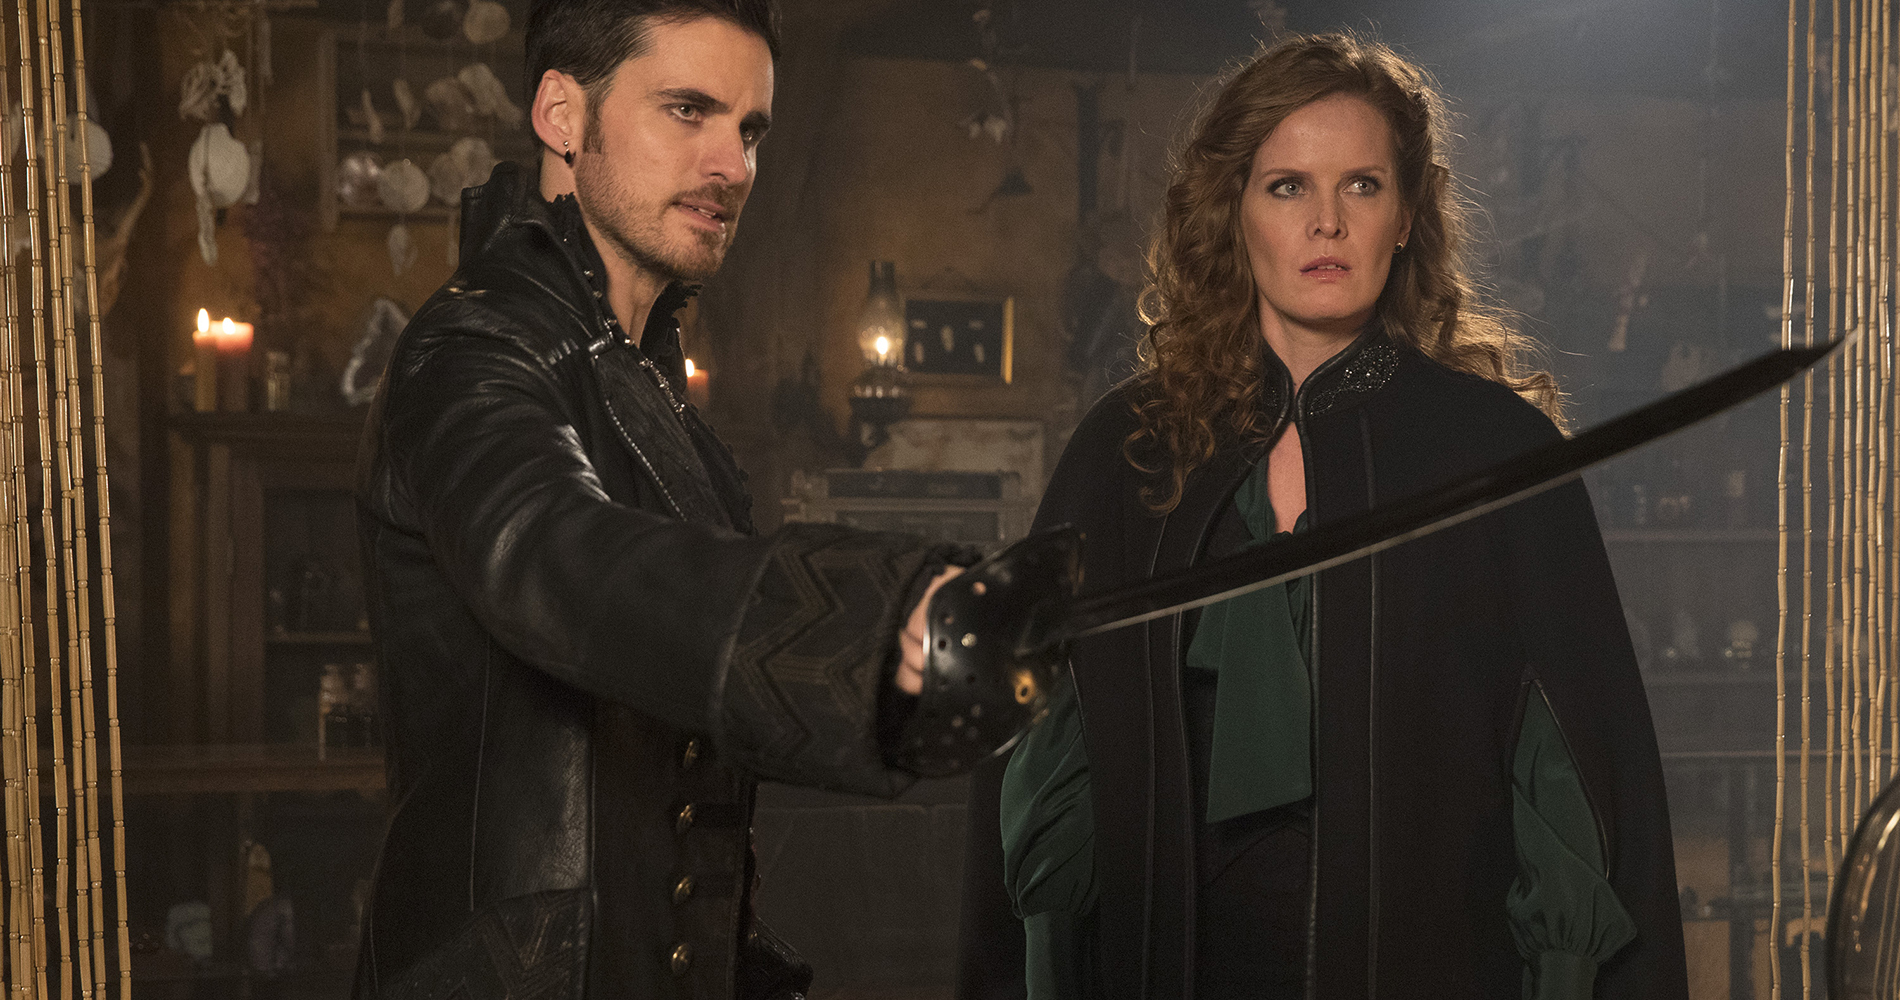 Once Upon a Time, How To Watch, Where To Stream Online And On TV, Trailer, Photos, Cast, spoilers